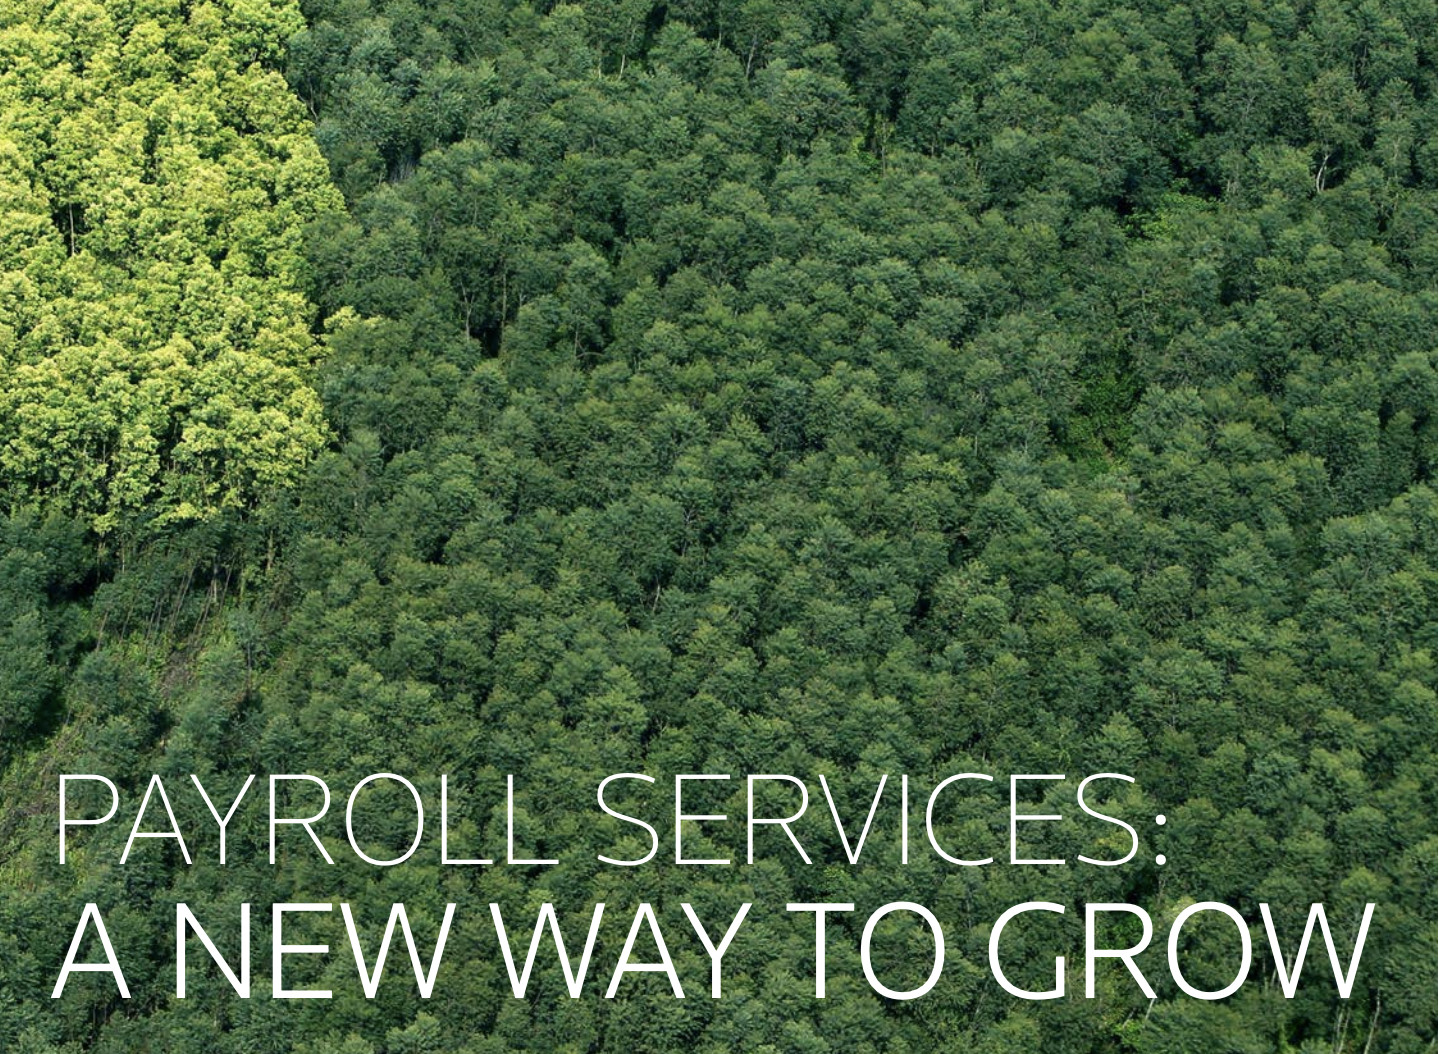 payroll service whitepaper new way to grow